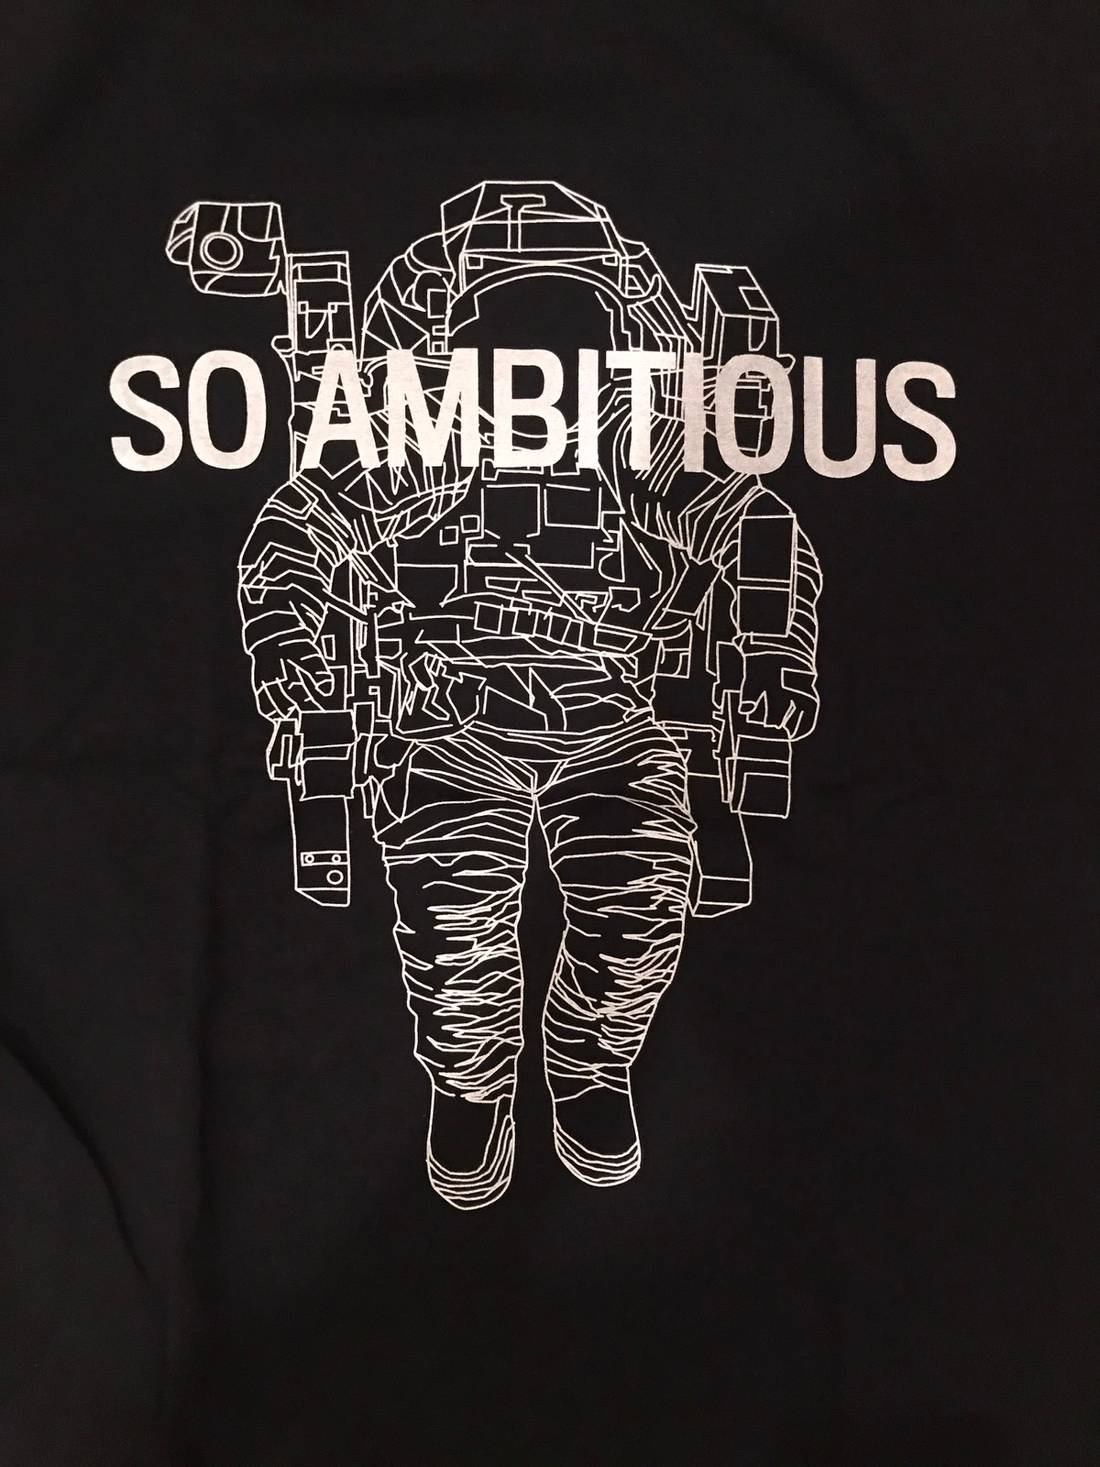 Billionaire boys club jay z blueprint 3 so ambitious size l billionaire boys club jay z blueprint 3 so ambitious size us l eu 52 malvernweather Choice Image